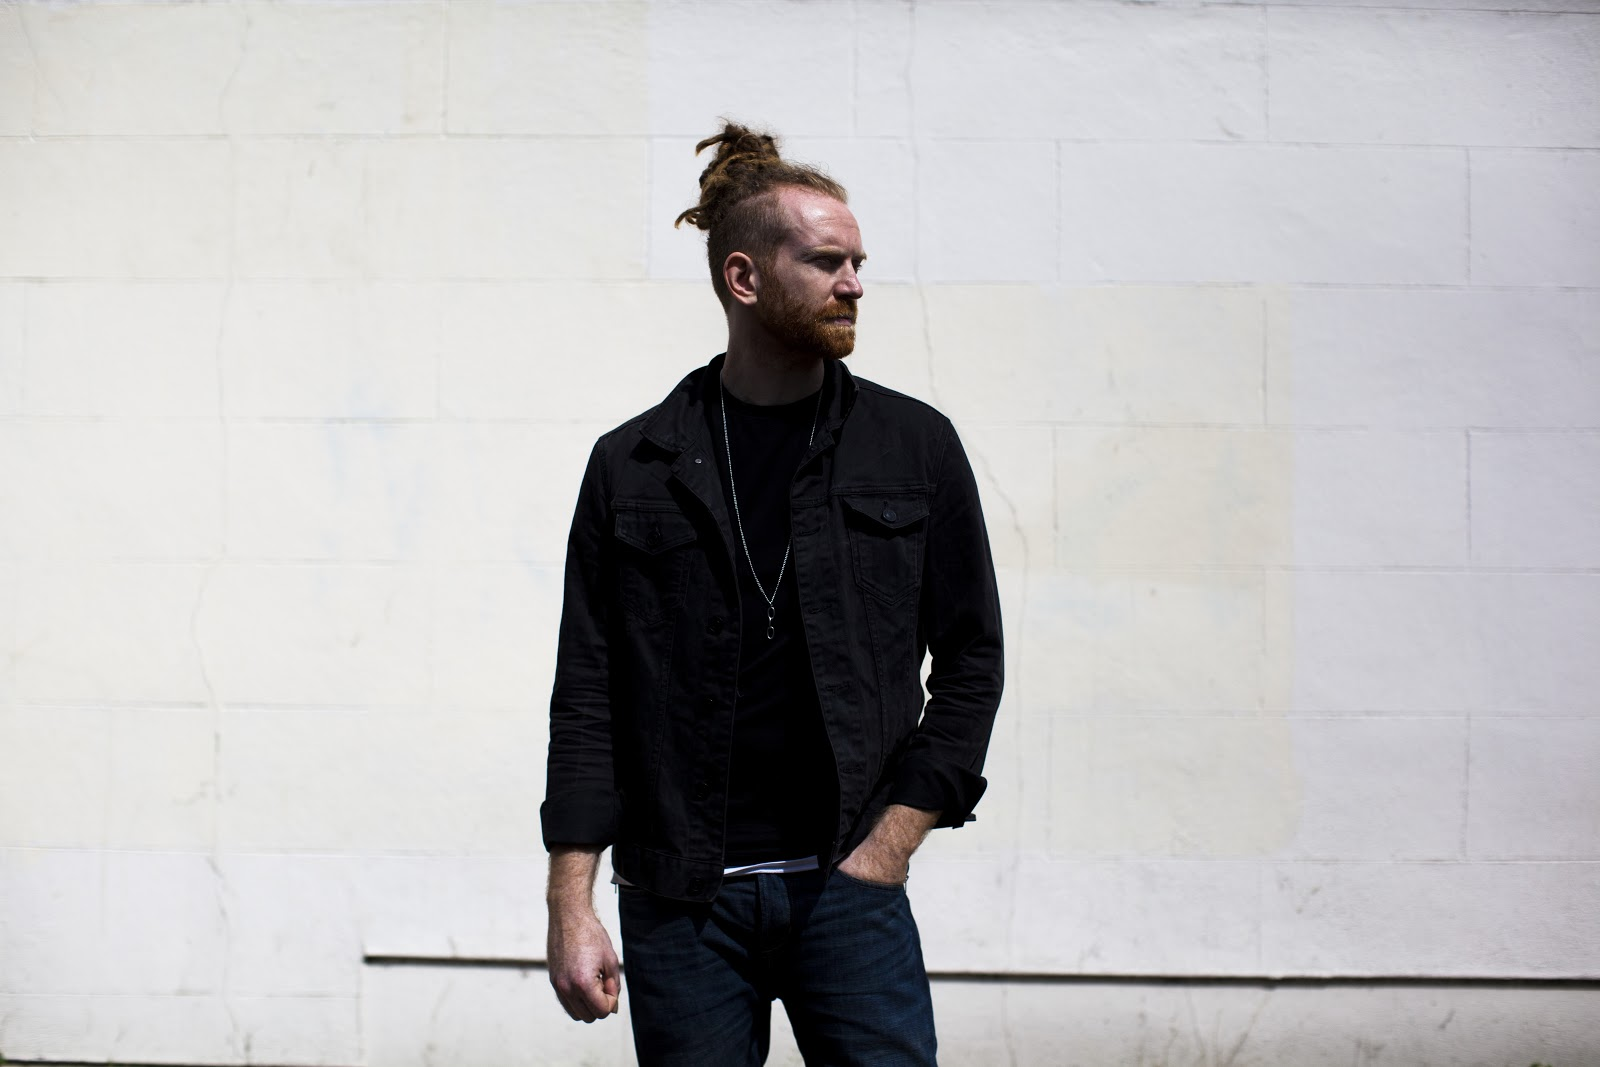 Newton Faulkner will perform at the Royal Northern College of Music Manchester